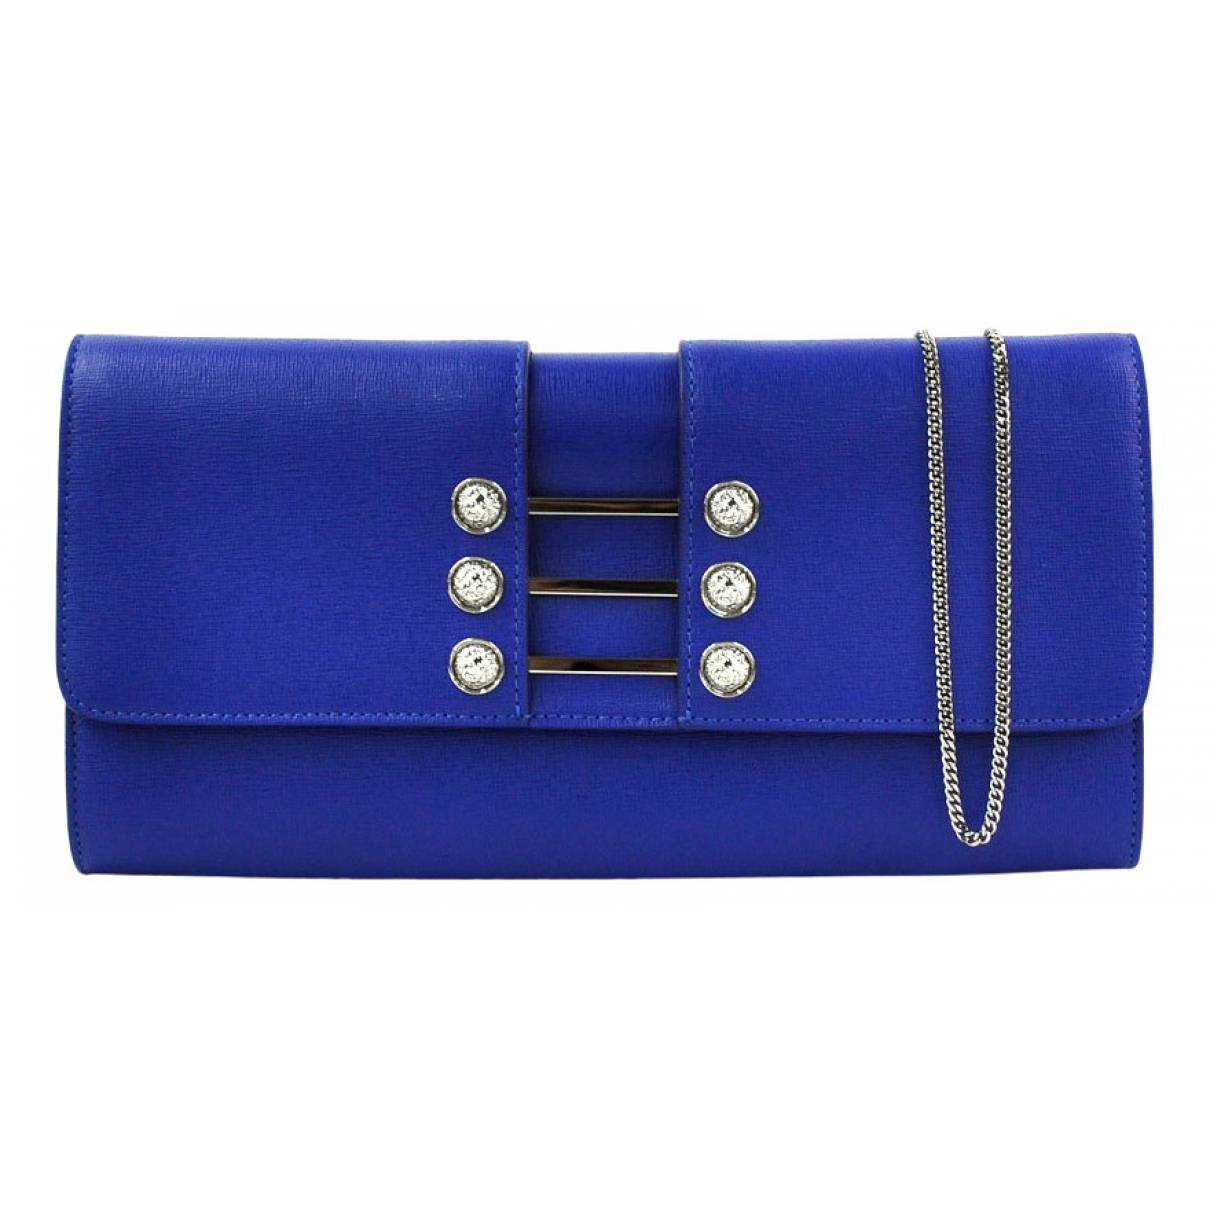 Versace \N Blue Leather Clutch bag for Women \N